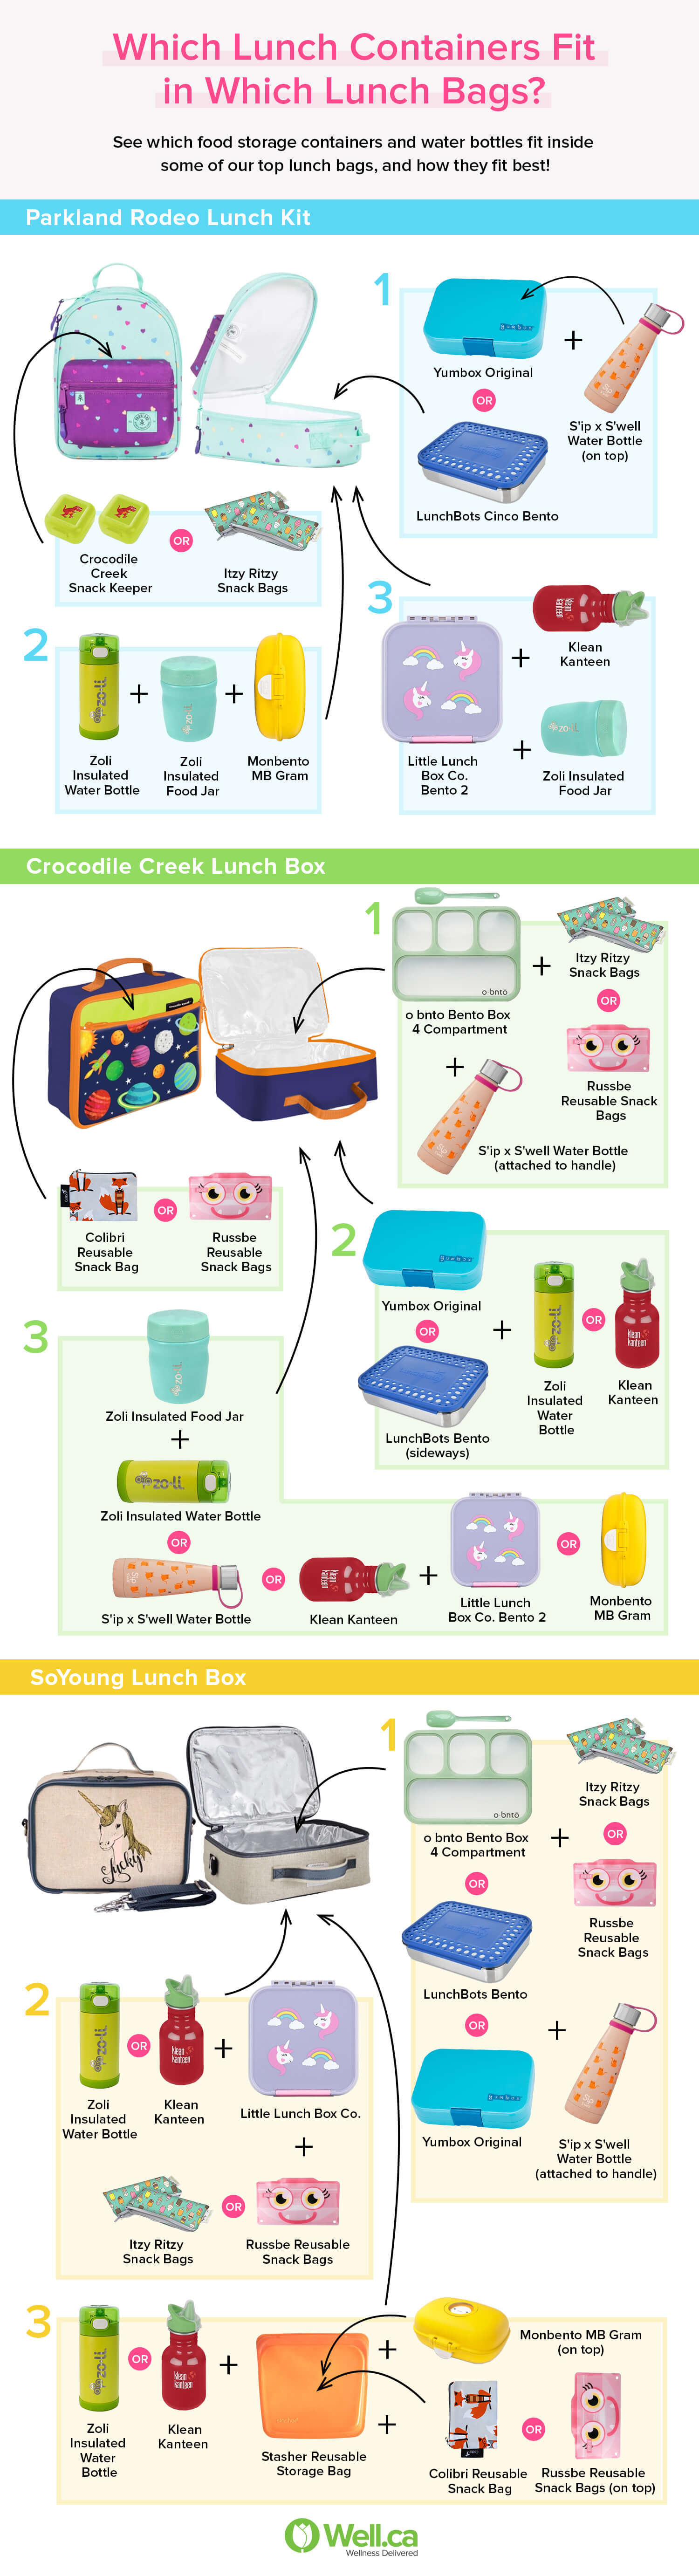 infographic - which lunch containers fit in which lunch bags